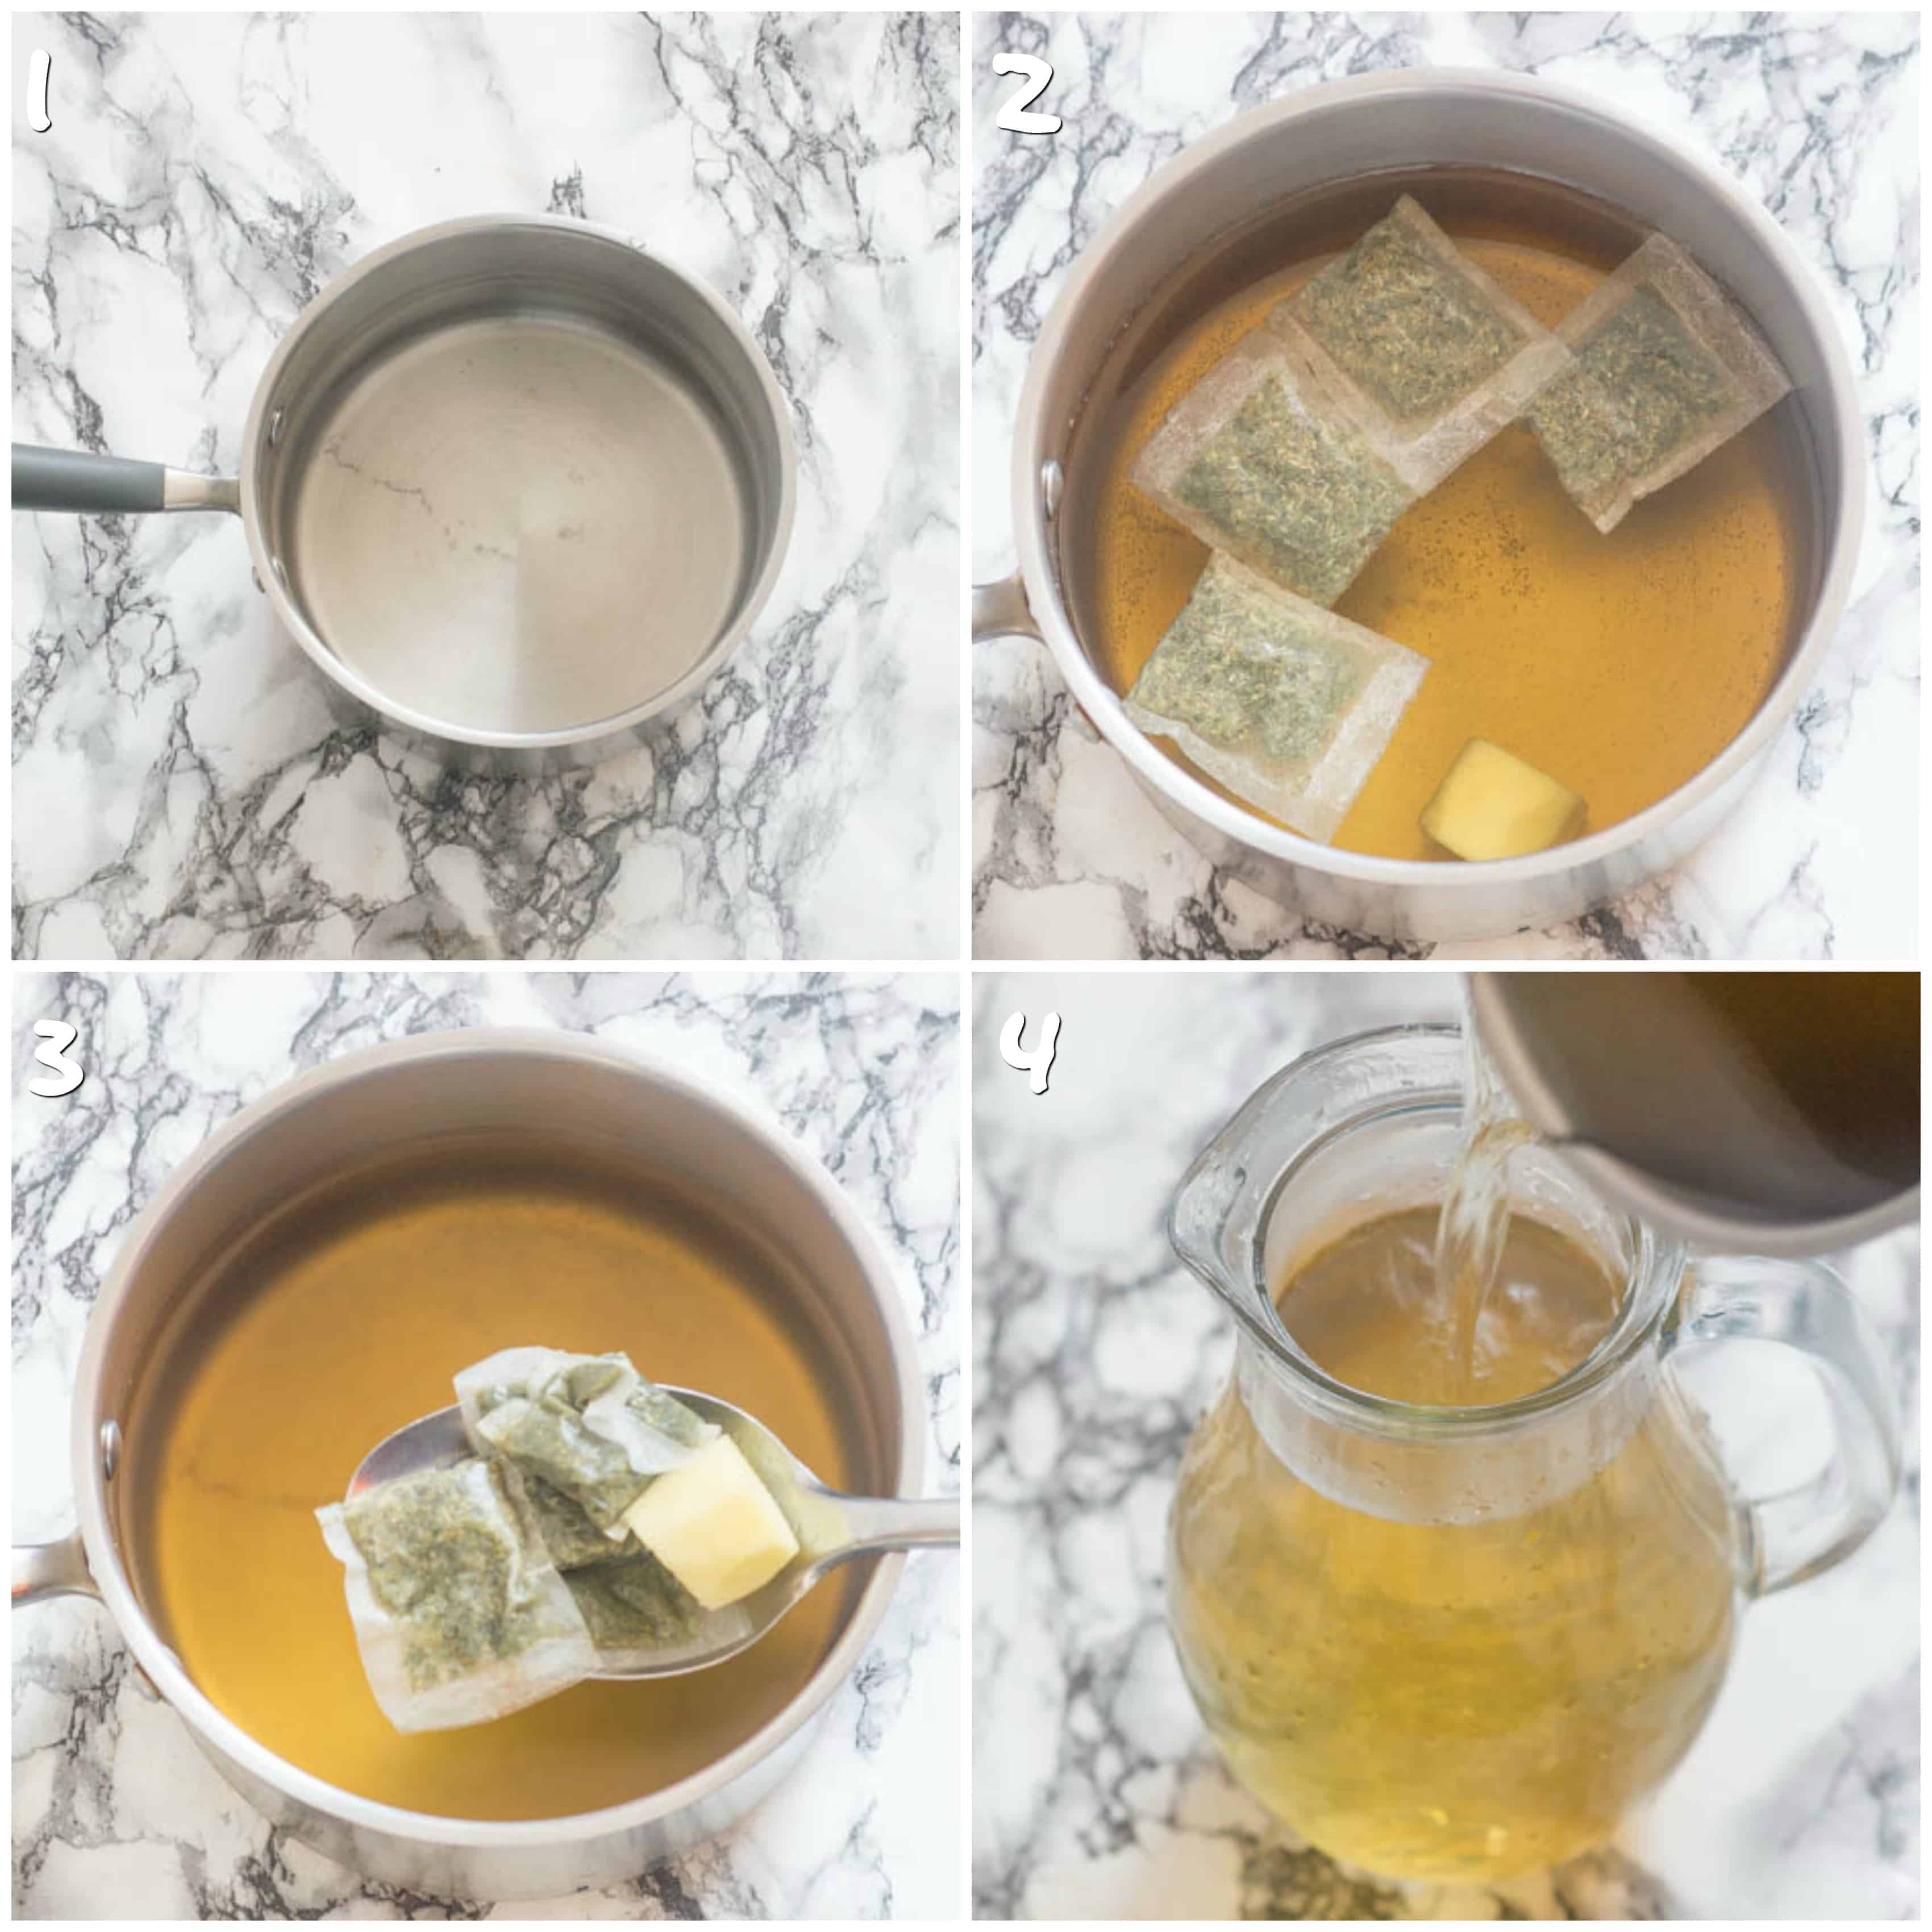 Making iced cersee tea steps 1-4 boiling water and brewing the tea